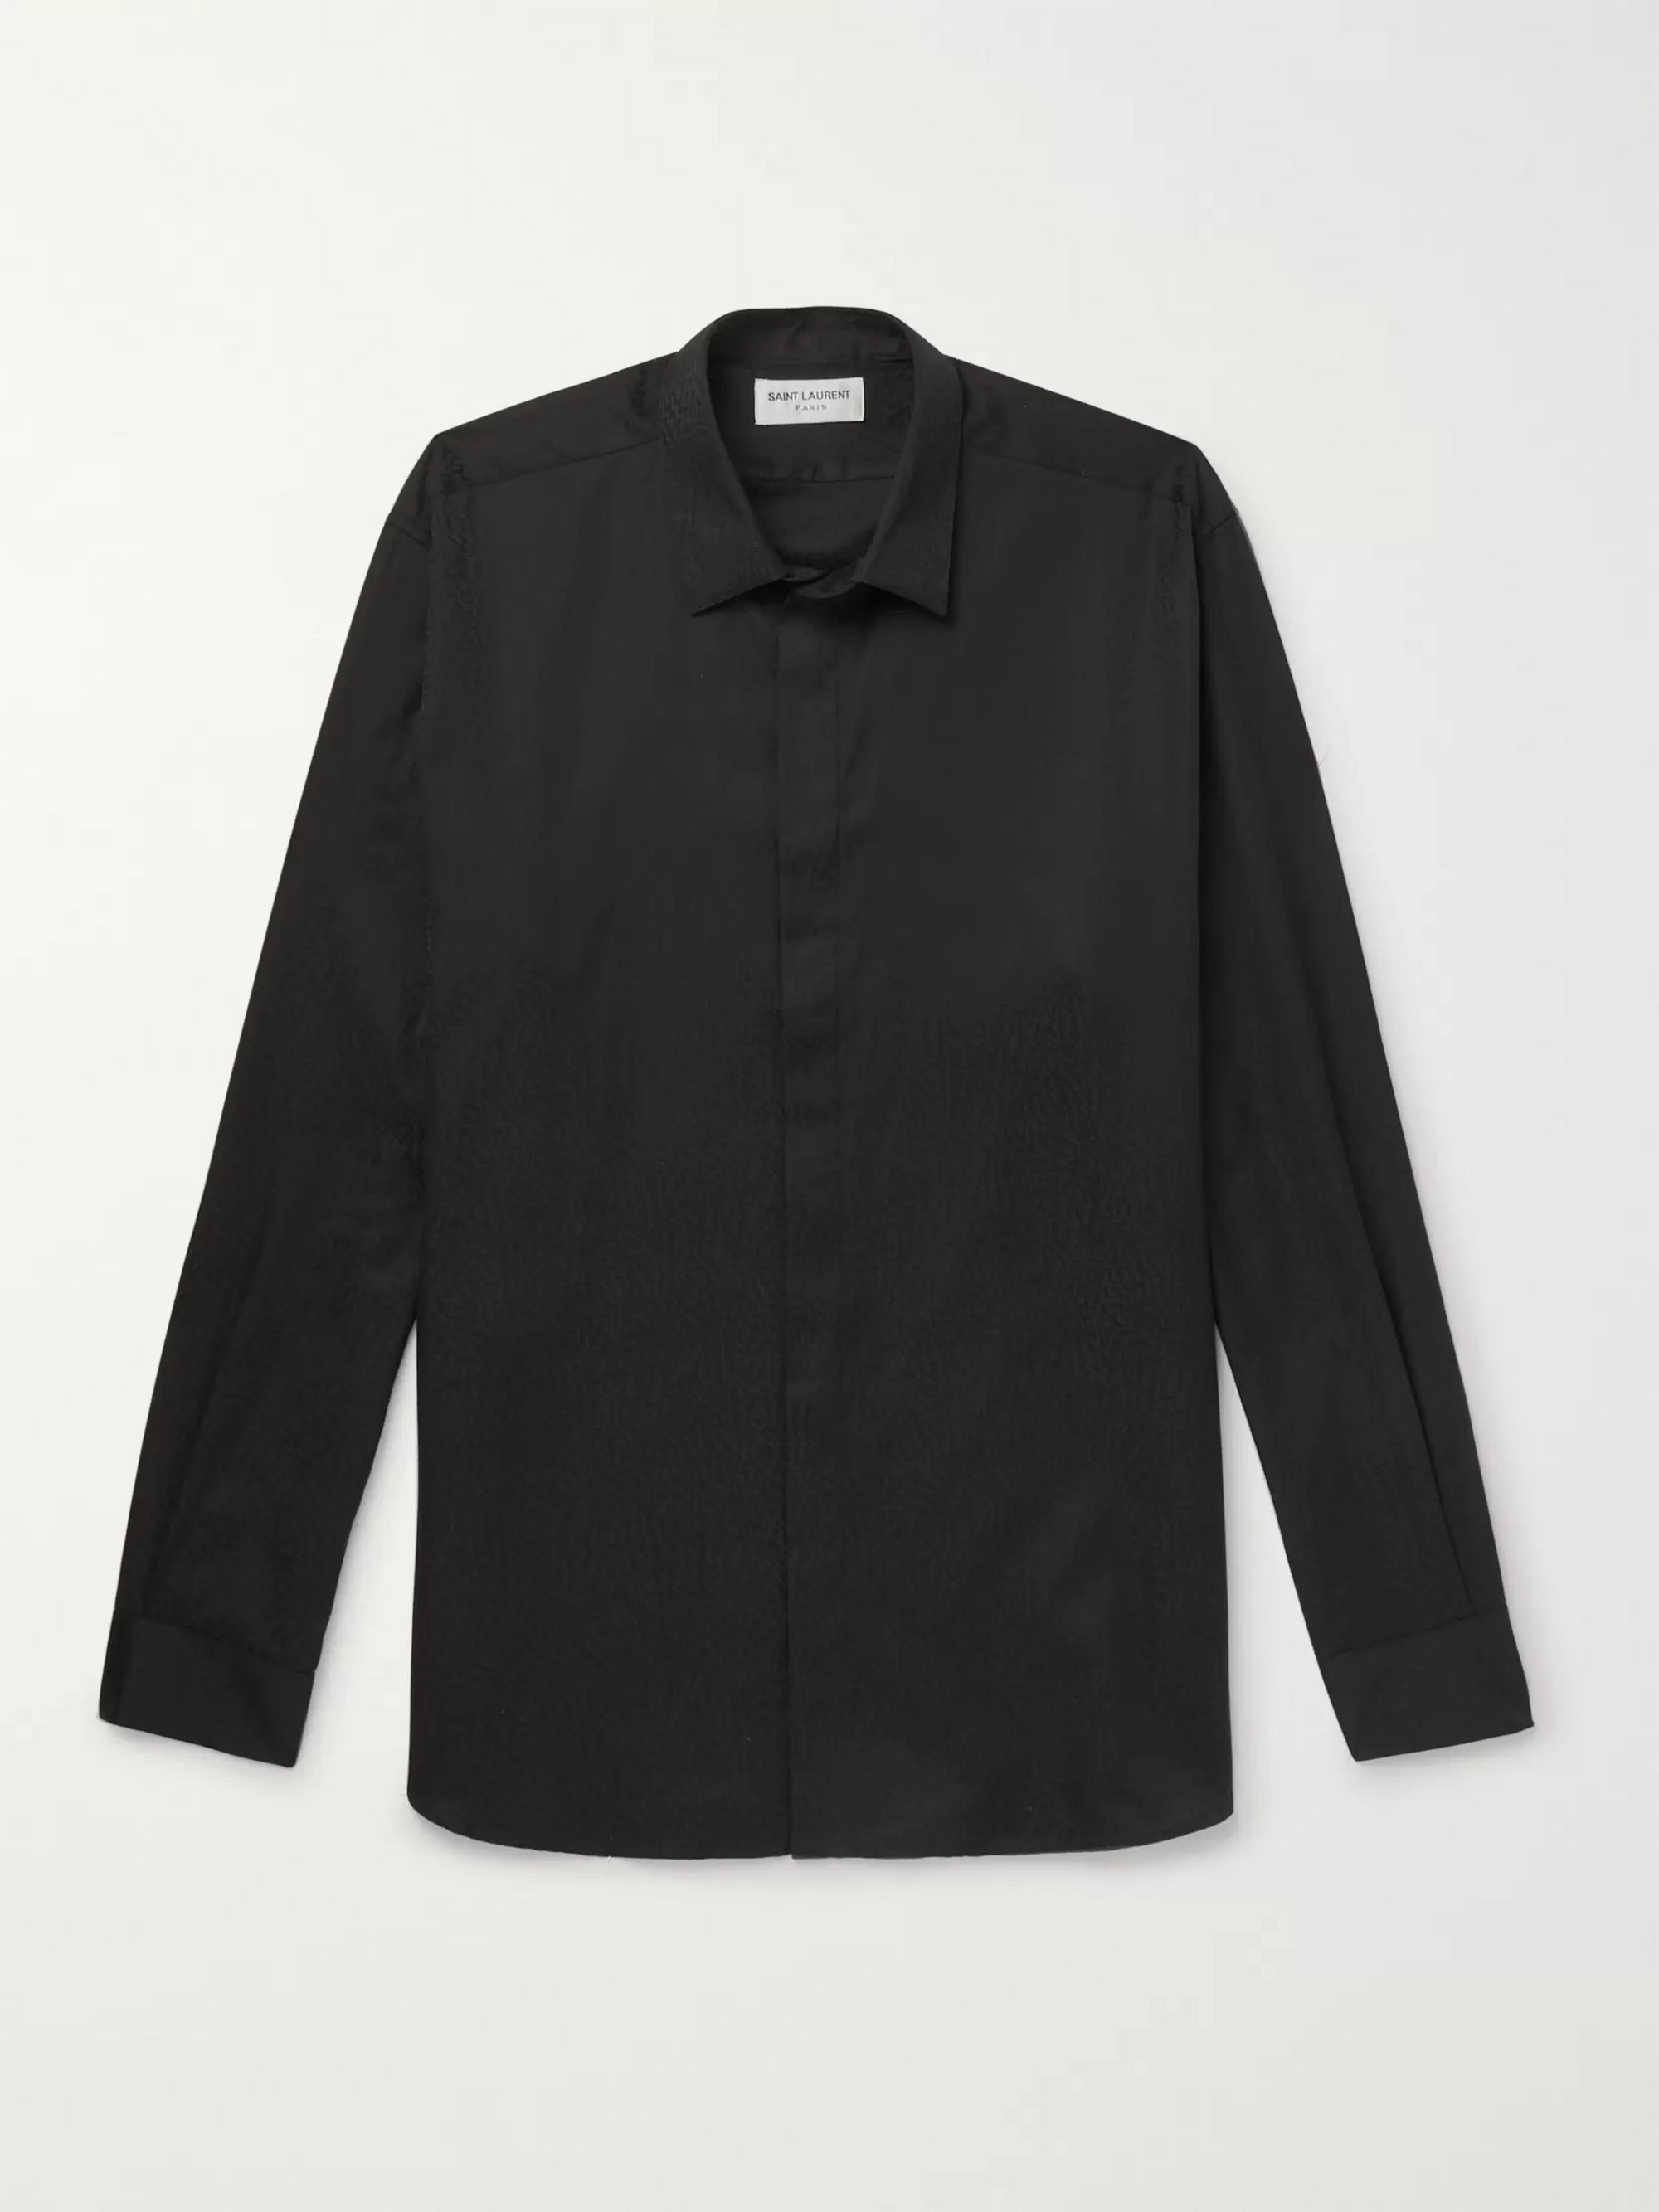 e207dc01419 SAINT LAURENT Cotton-Jacquard Shirt